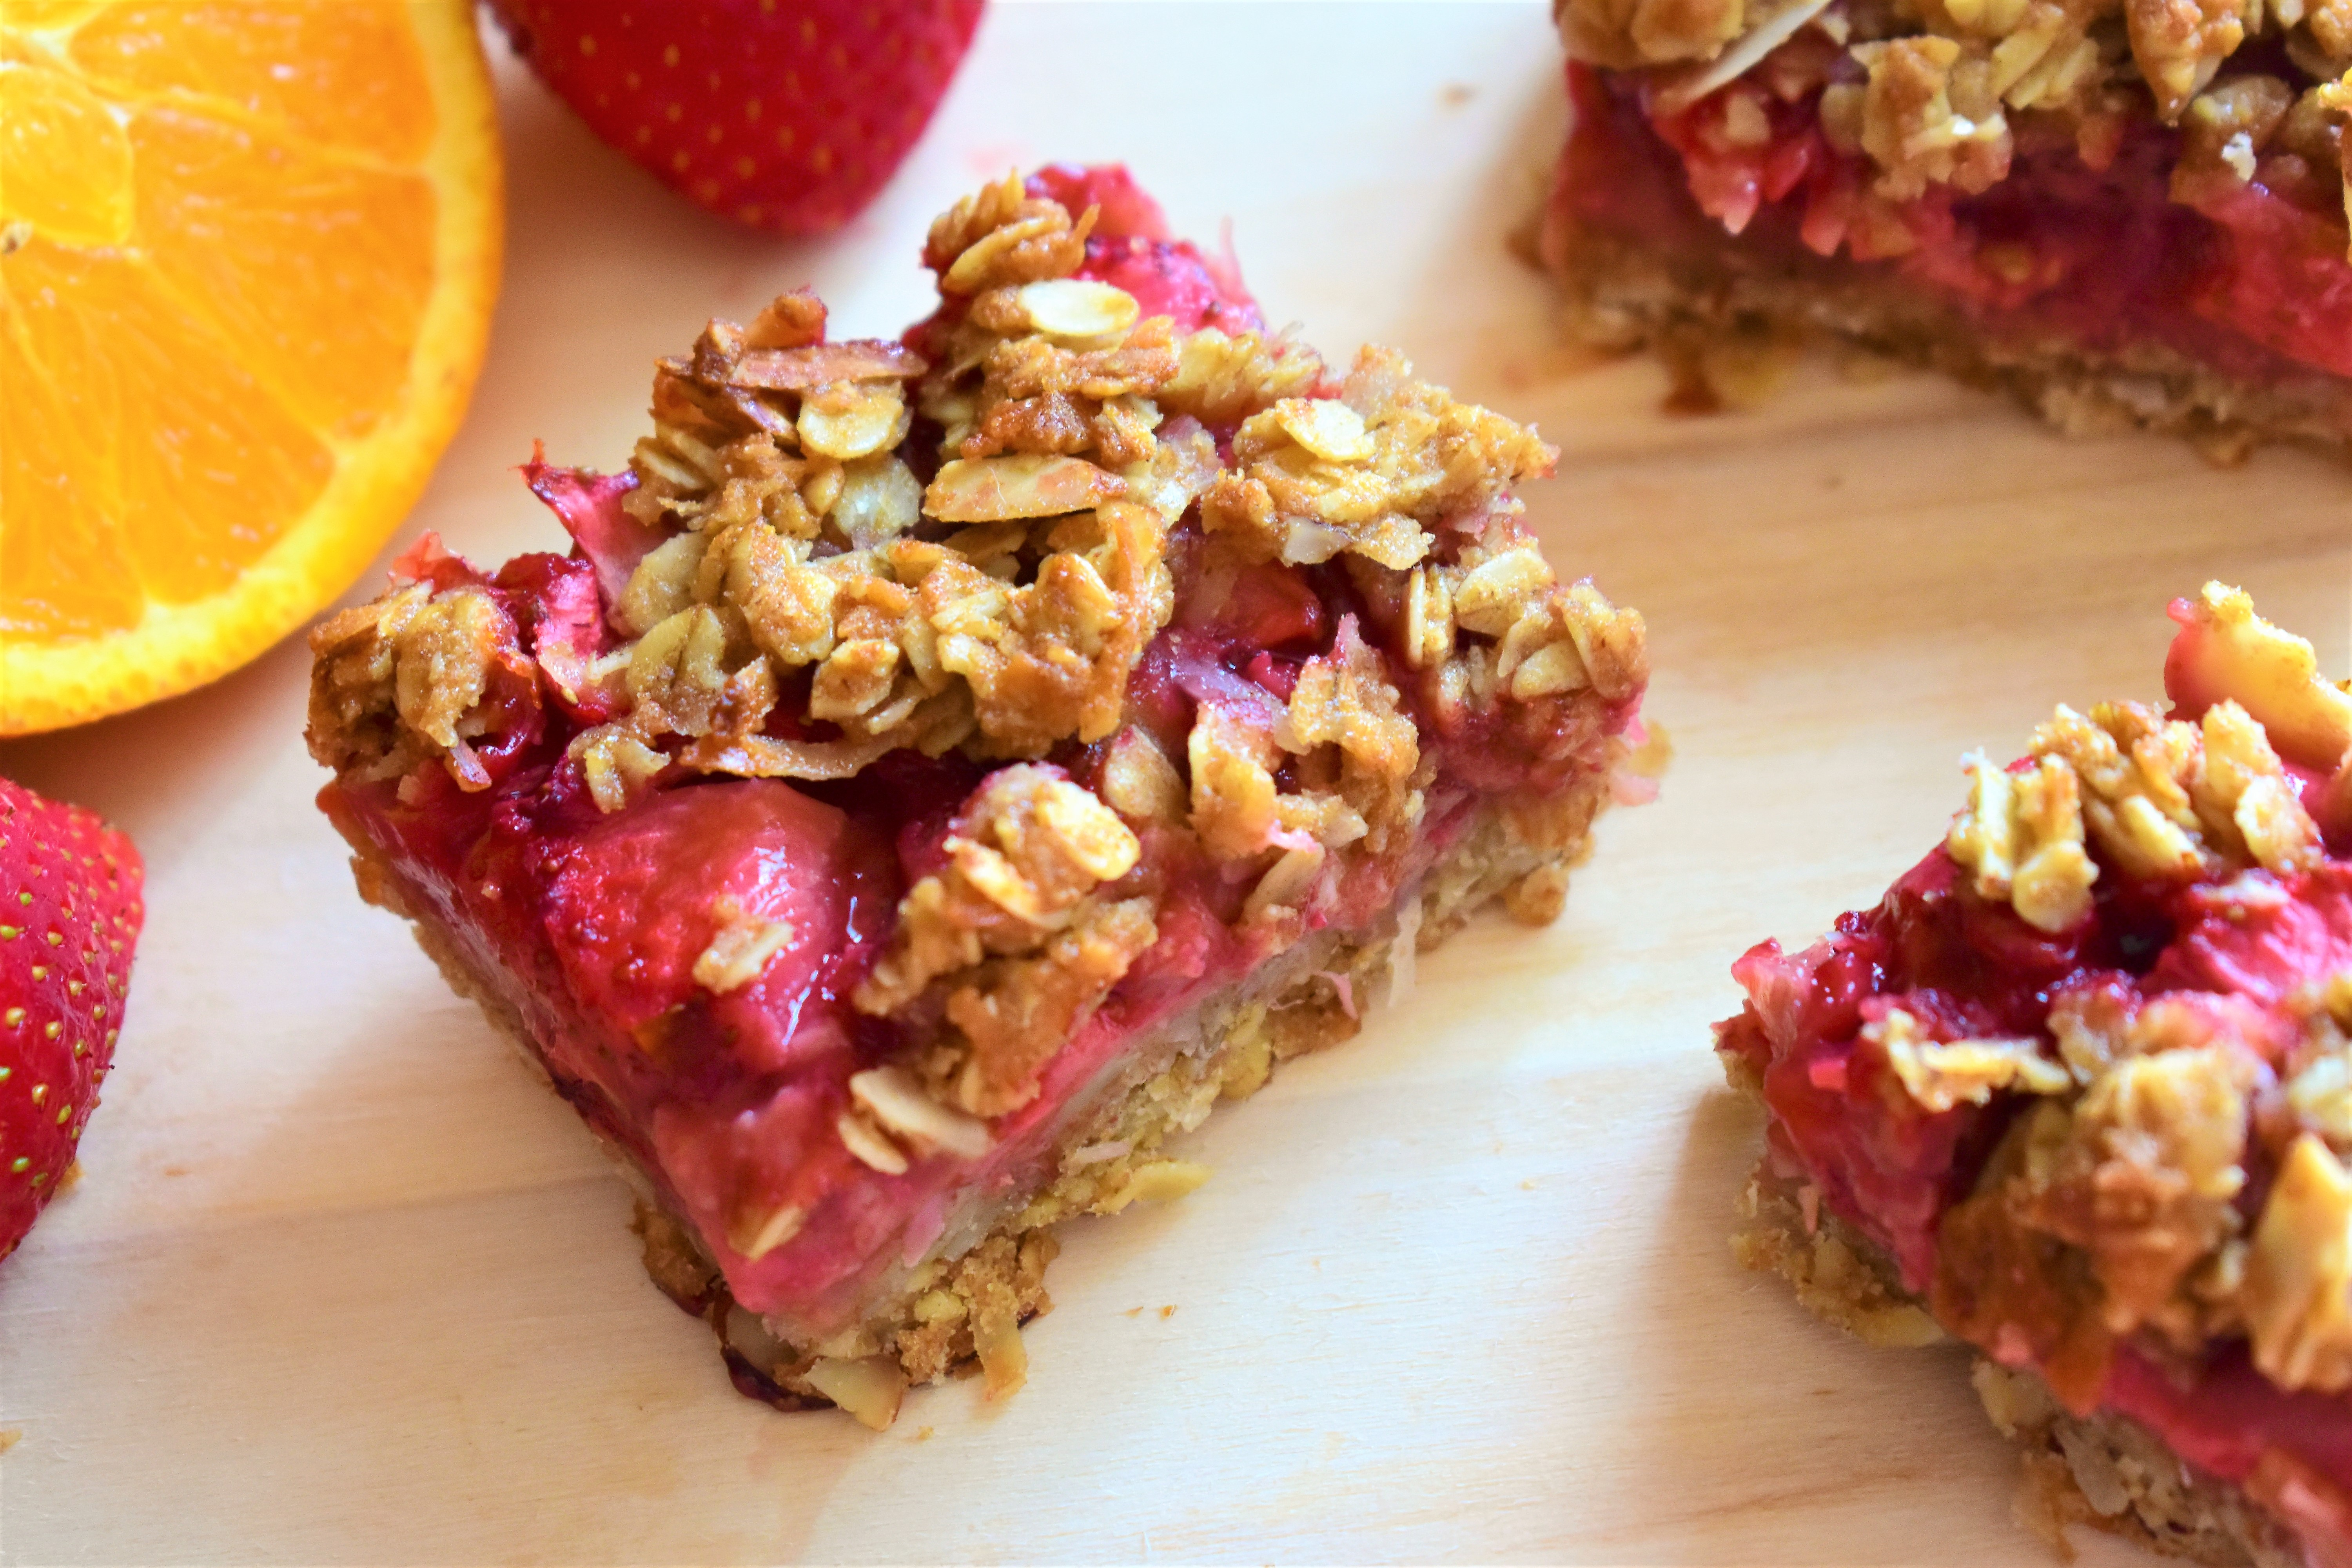 Strawberry-Orange Oatmeal Bars